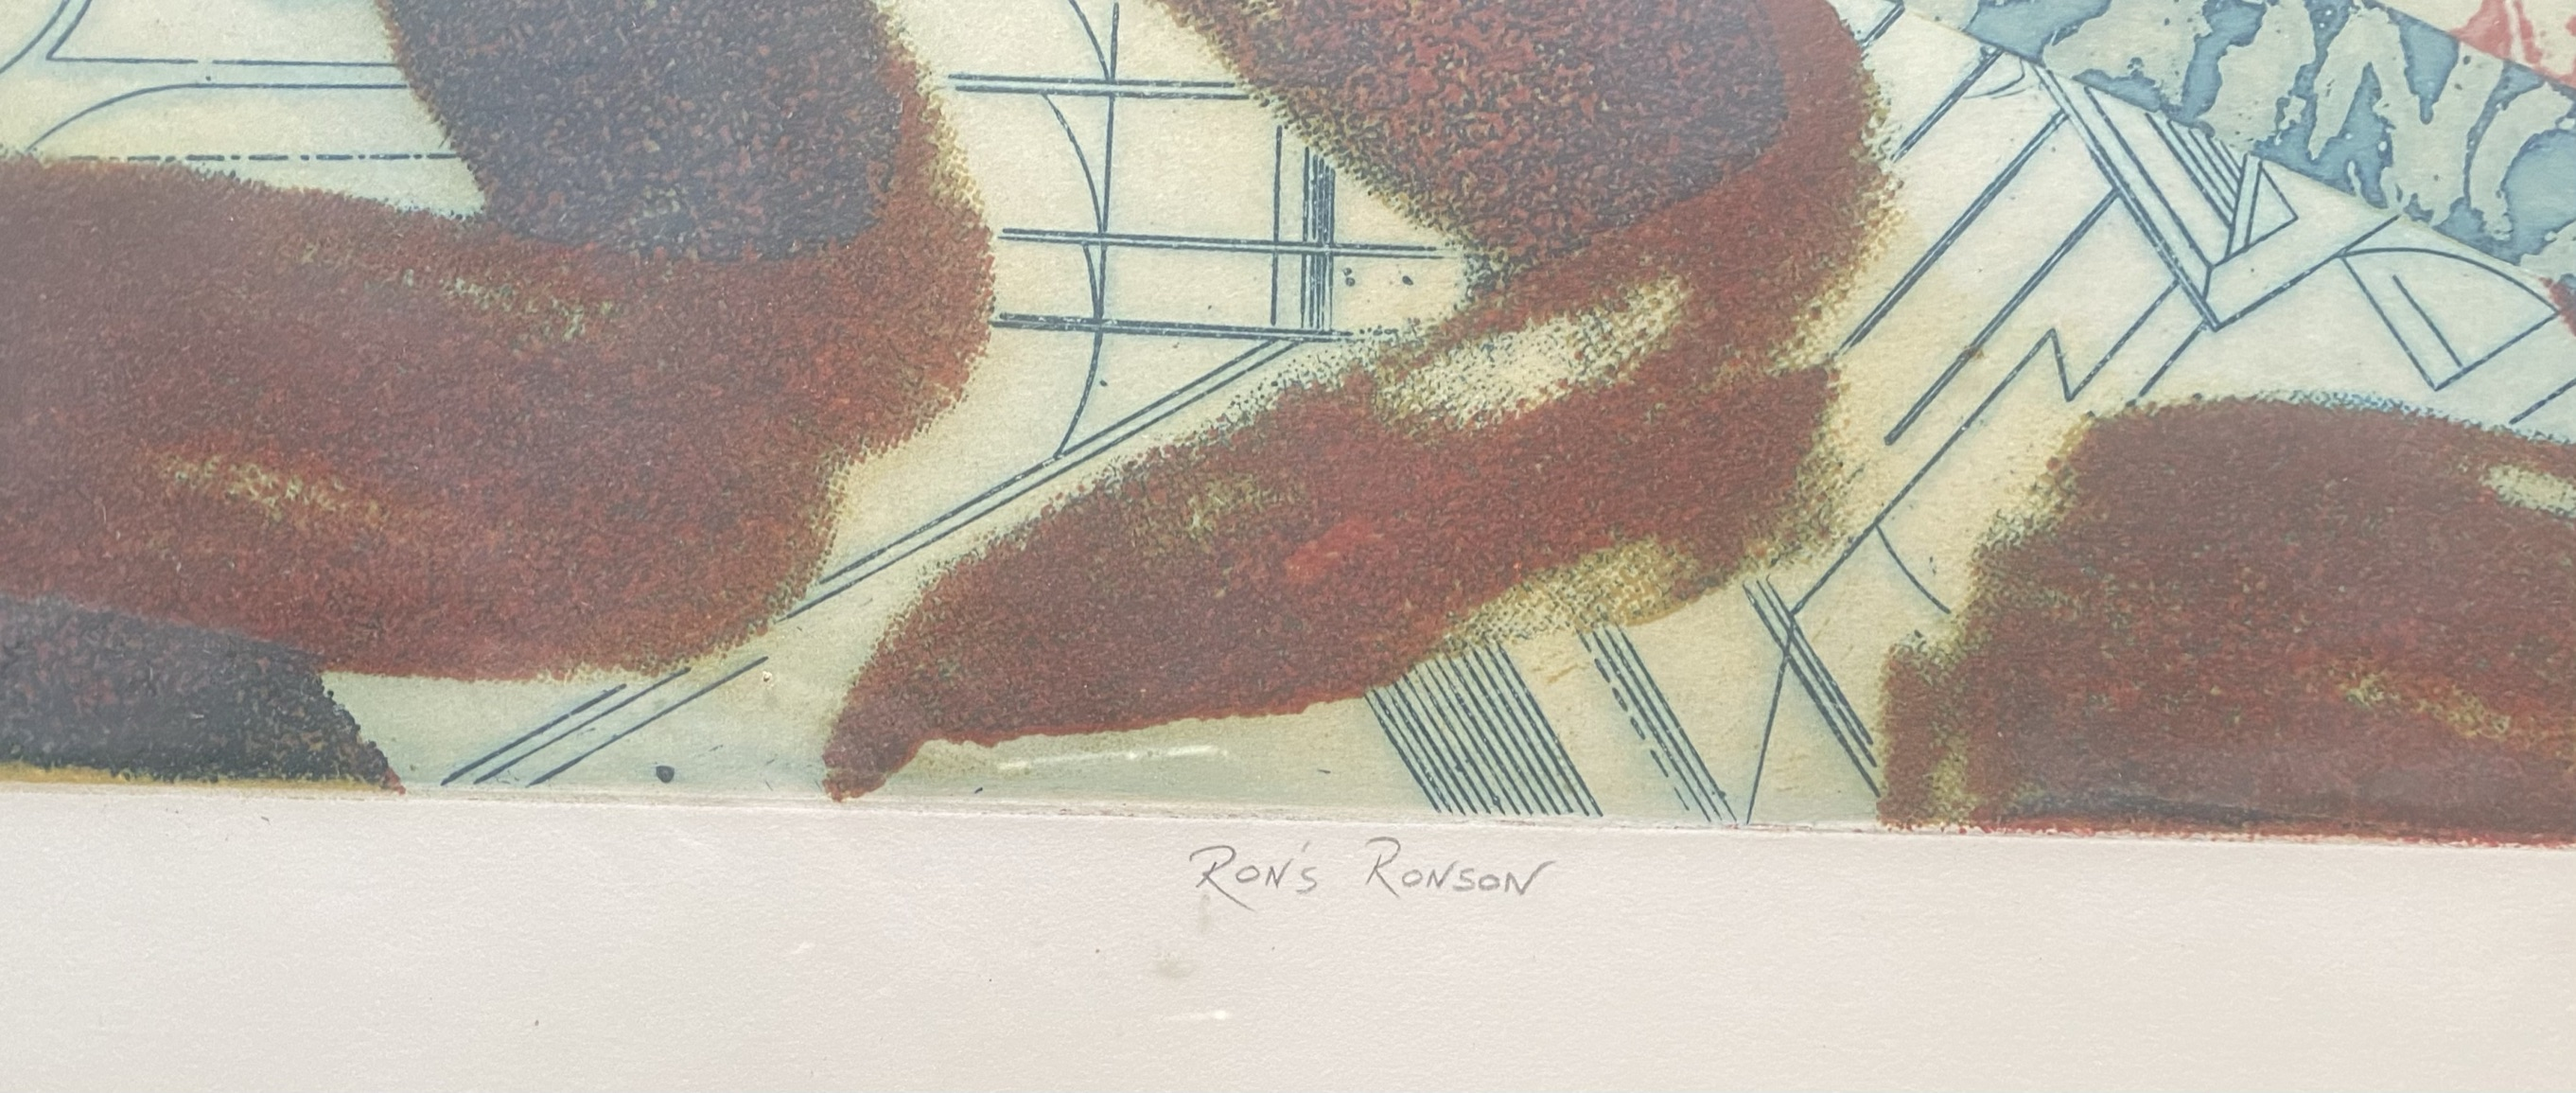 """Clive Bristow """"Rons Ronson"""" artists proof - Image 3 of 5"""